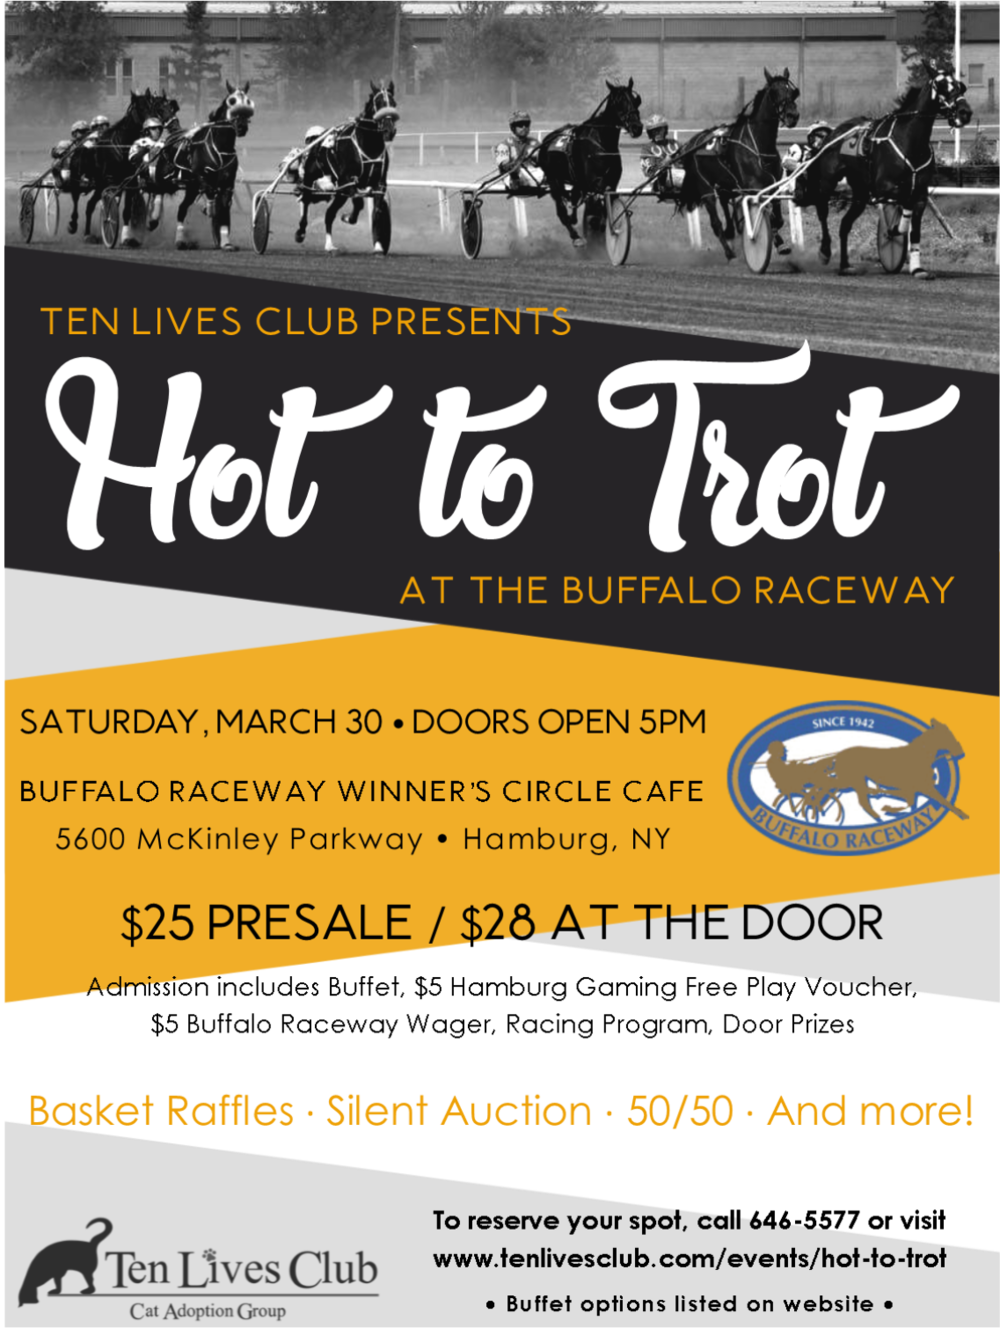 Hot to Trot Flyer.png